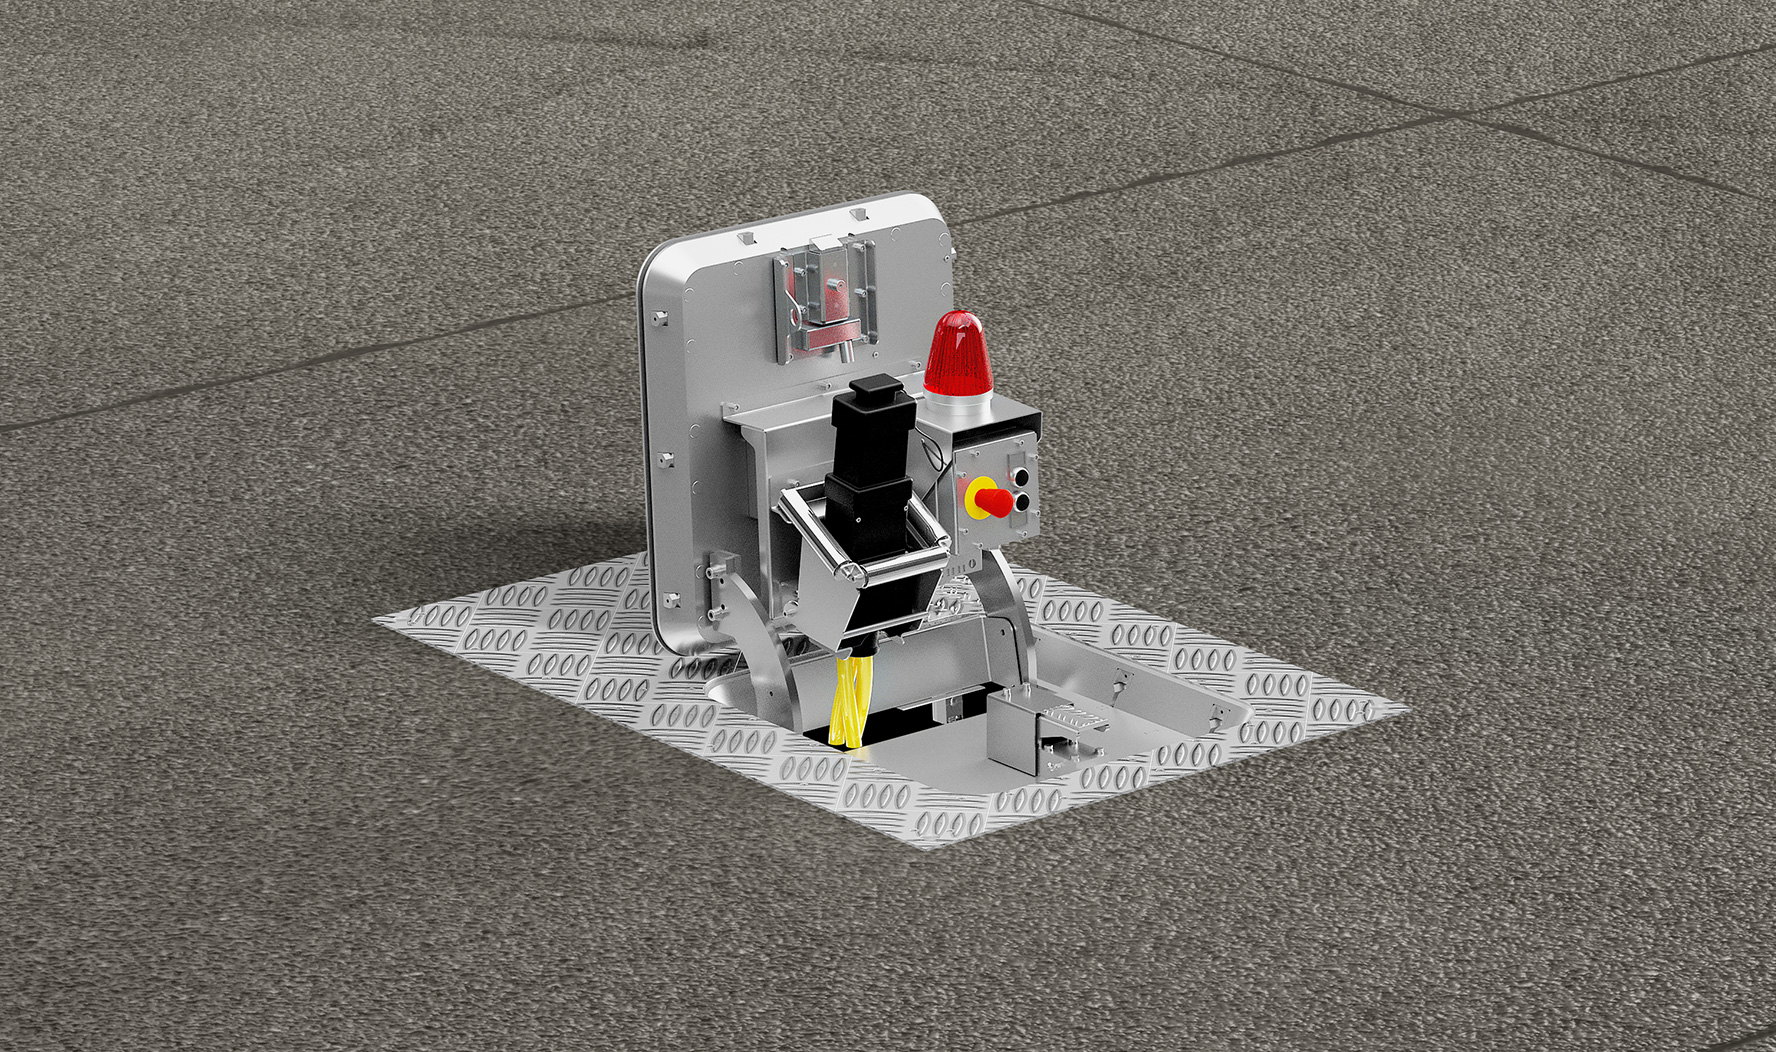 hatch pit, pit systems, airport solutions, airfield solutions, apron, plug storage